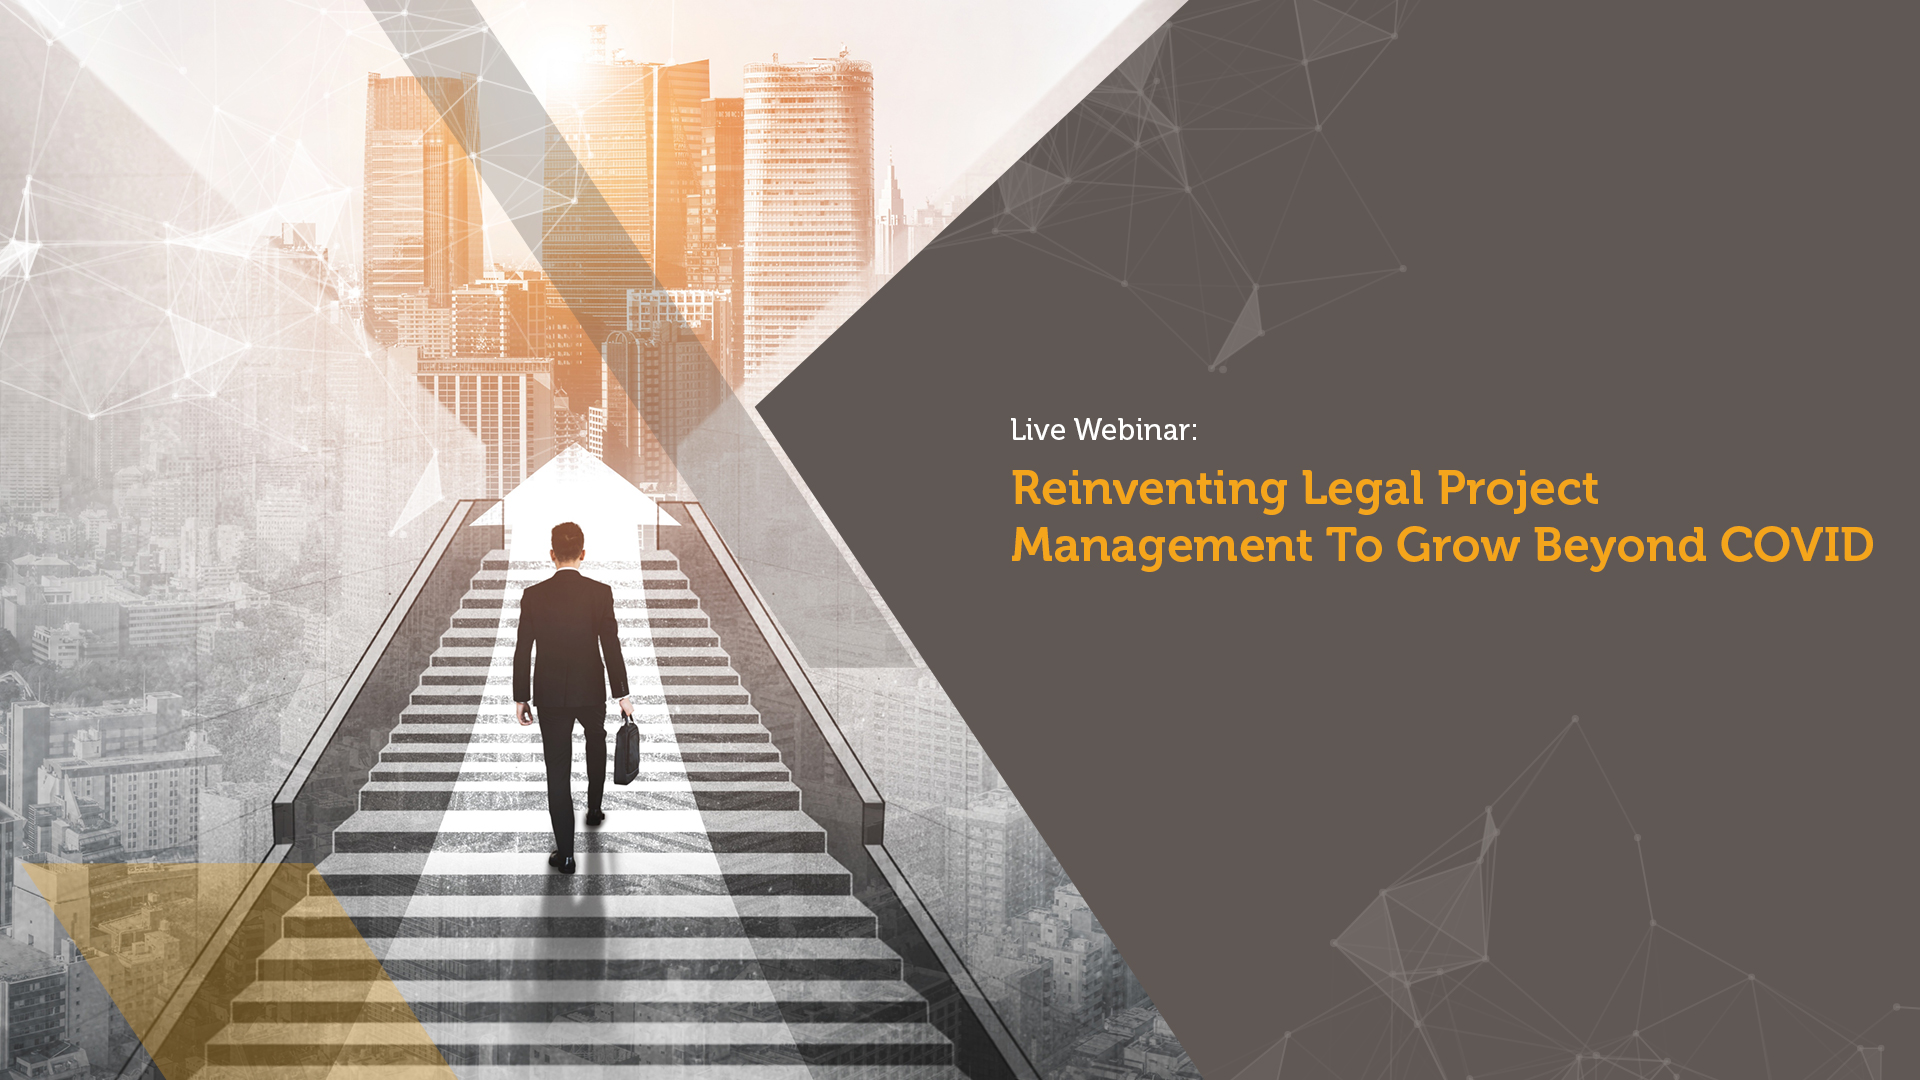 Reinventing legal project management to grow beyond covid webinar